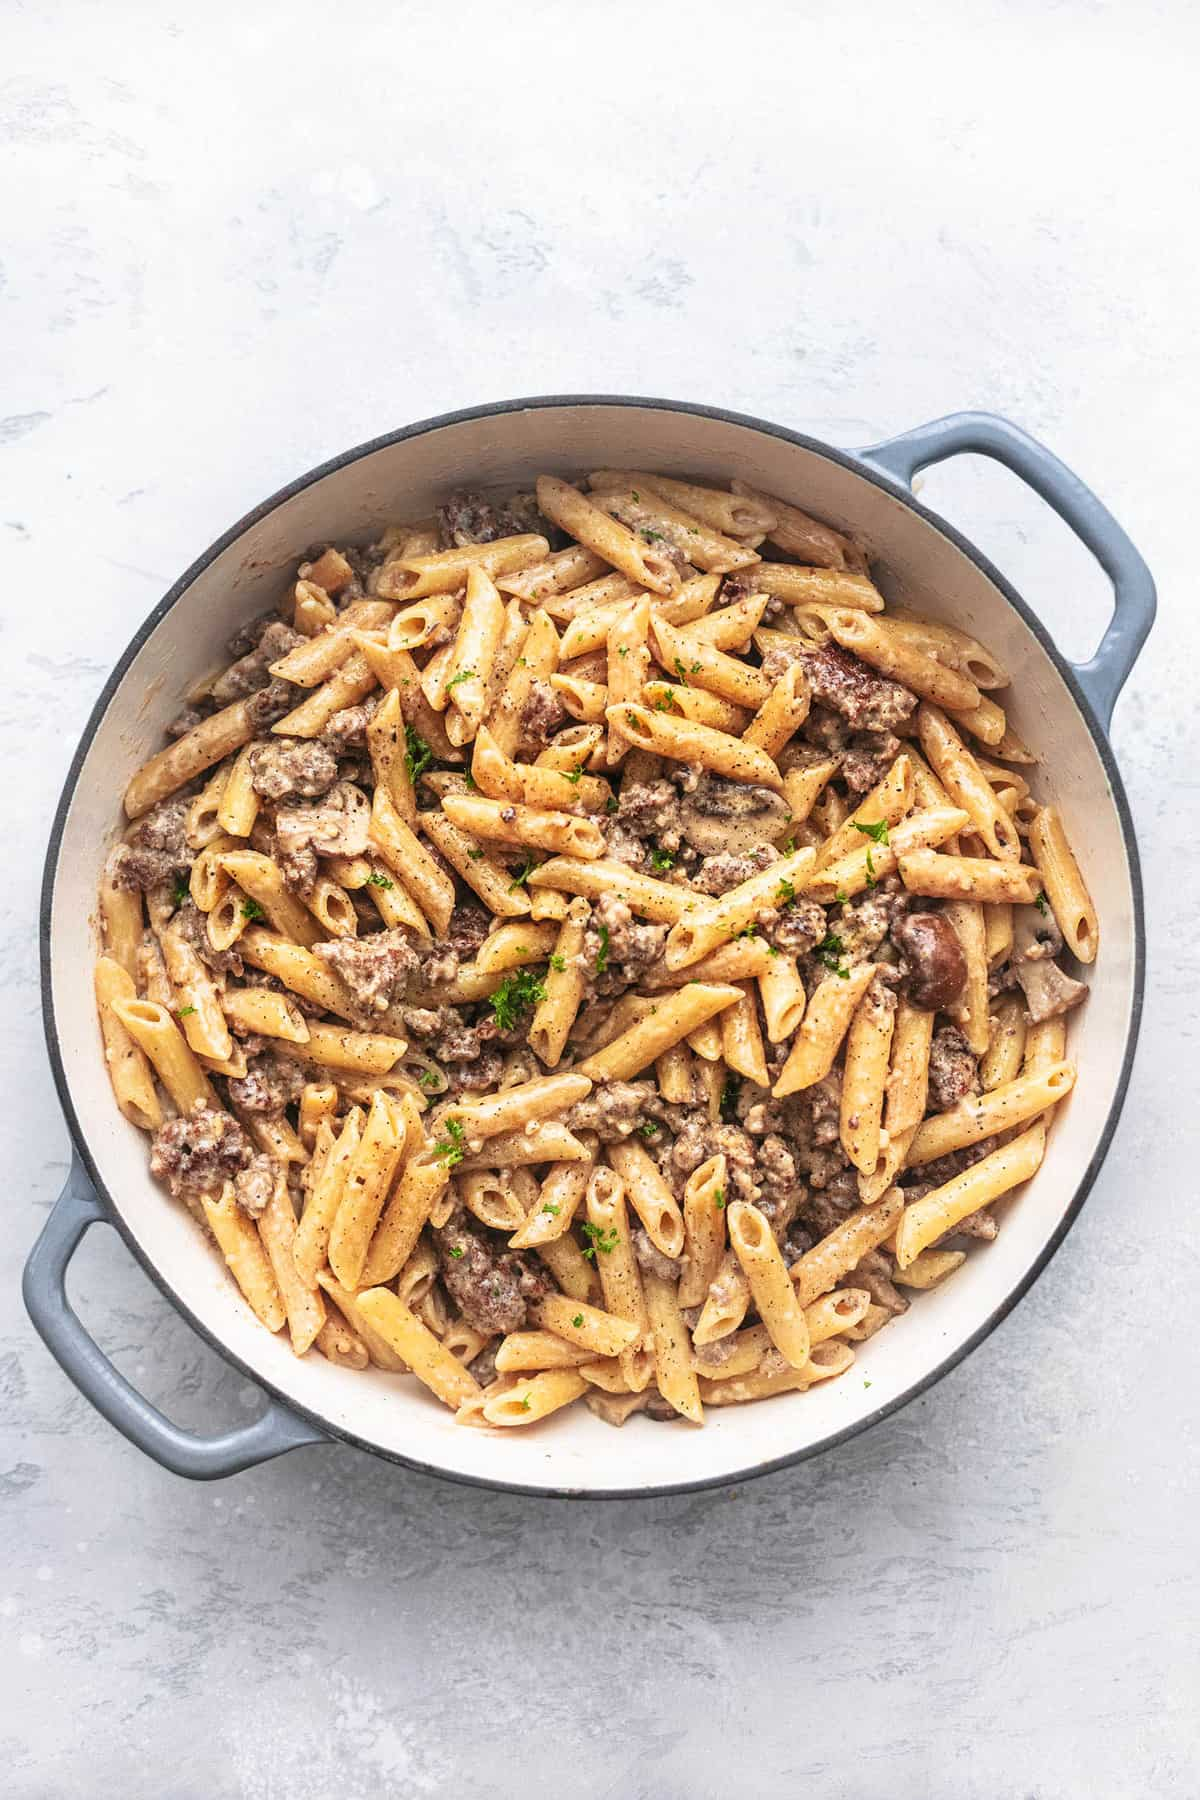 penne with white sauce and mushrooms and ground pork in a skillet on a gray background